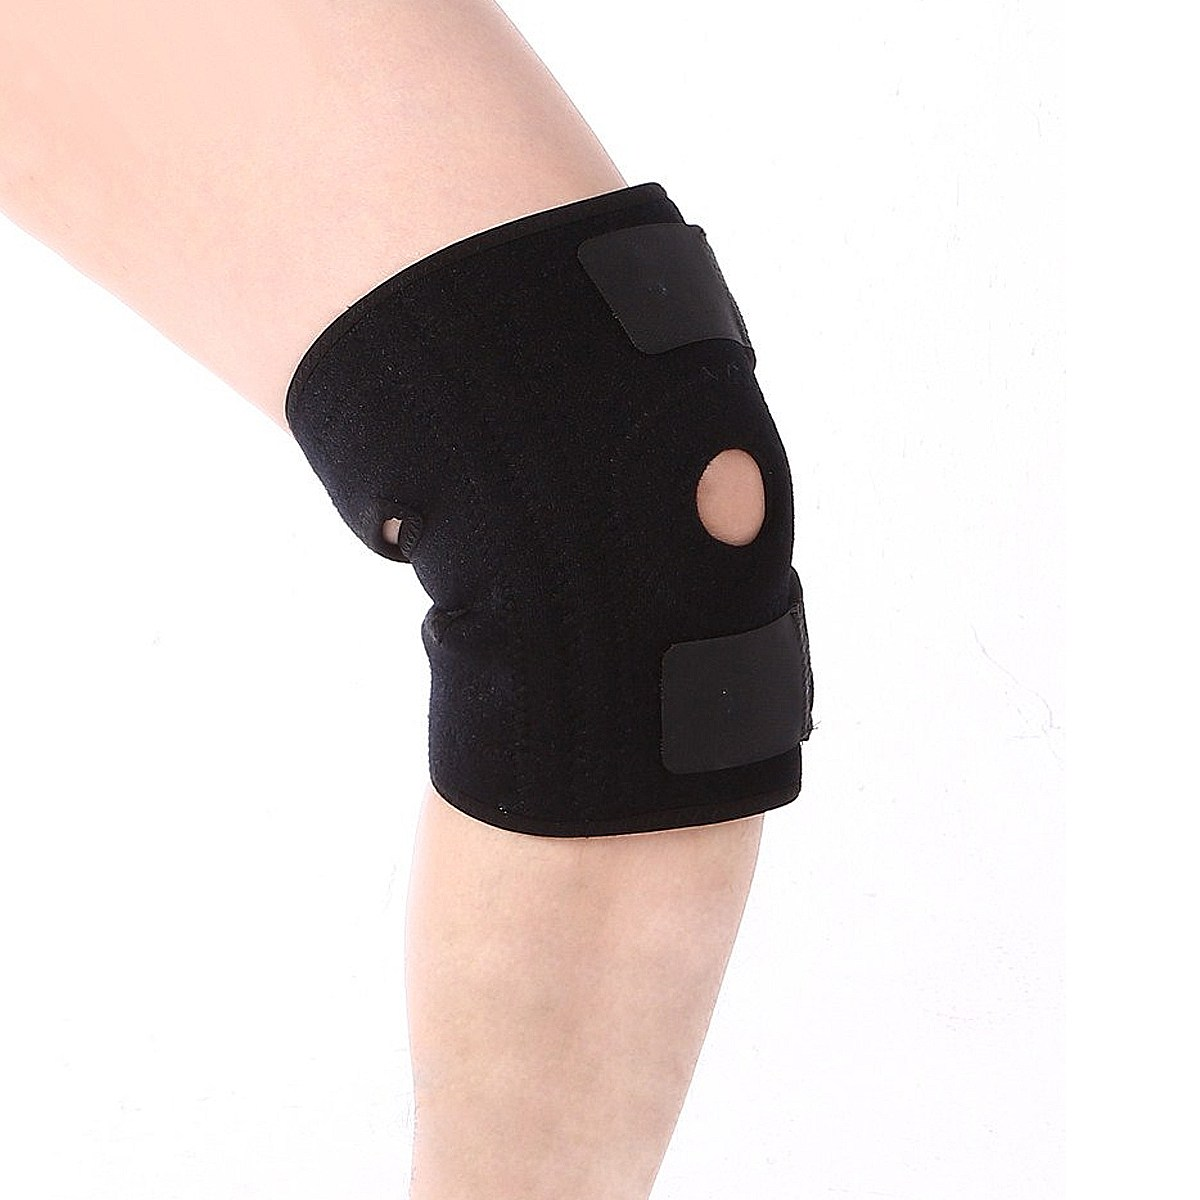 Safurance Outdoor Sports Leg Knee Patella Compression Protector Brace Support Pad Sleeve Workplace Safety Kneepad scoyco motorcycle riding knee protector extreme sports knee pads bycle cycling bike racing tactal skate protective ear